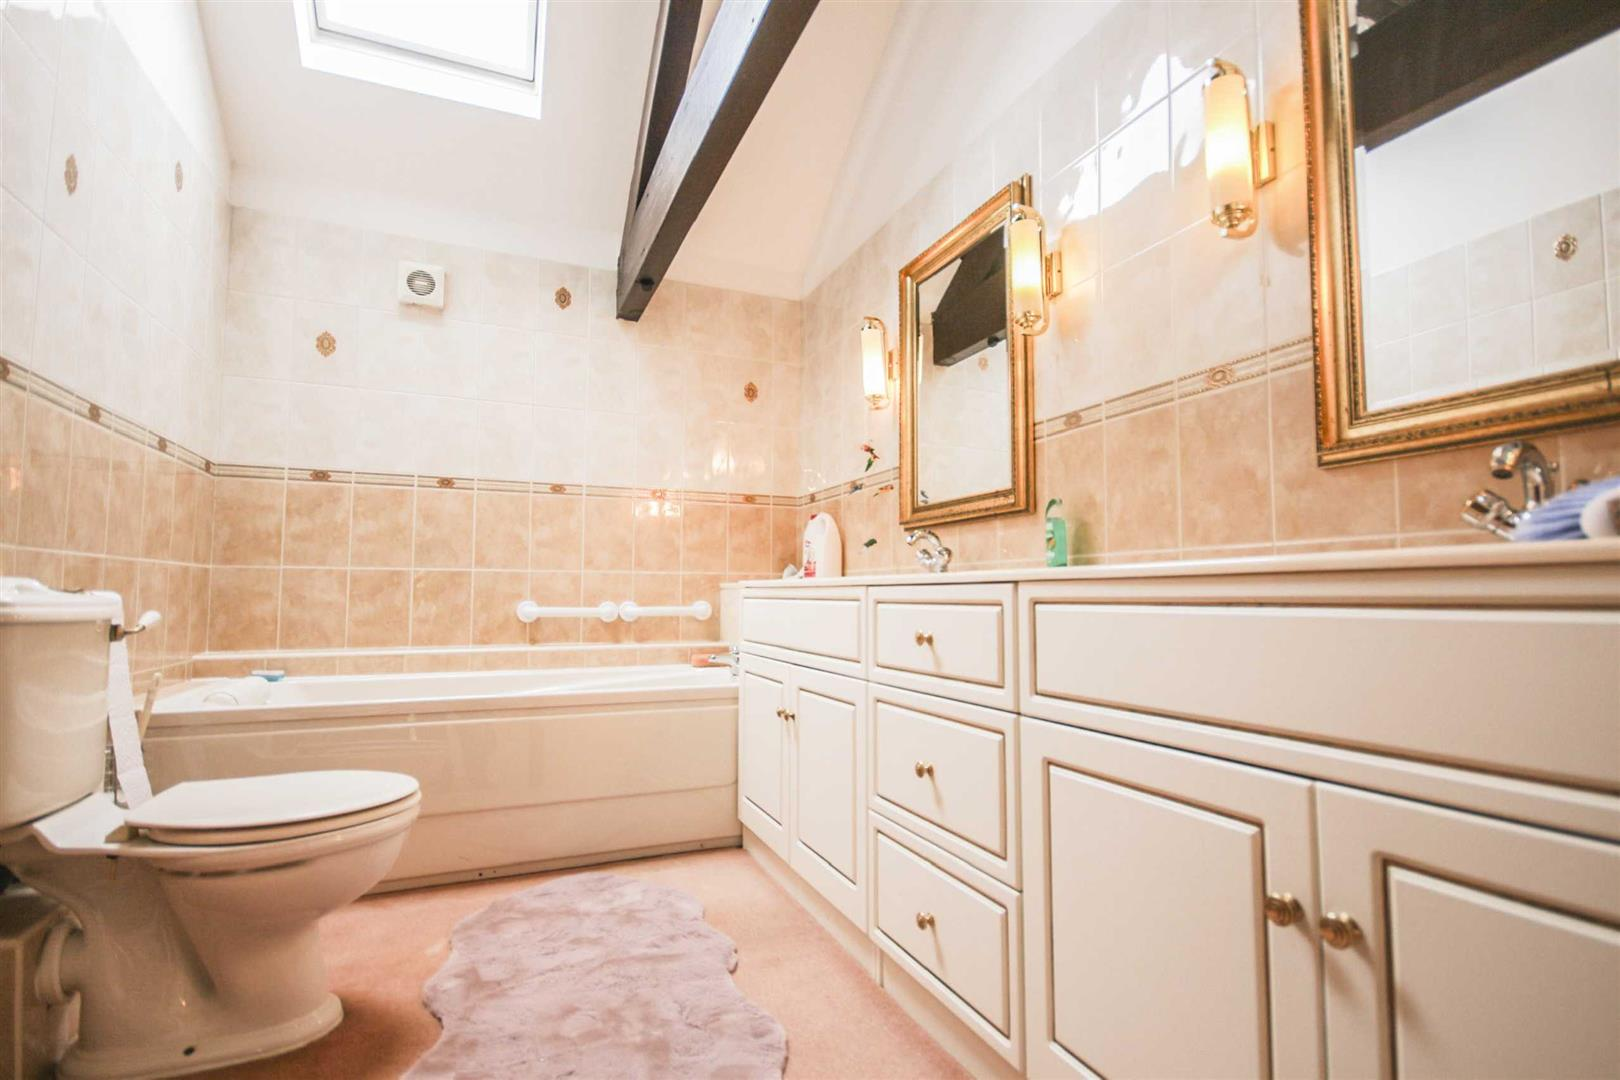 3 Bedroom Barn Conversion For Sale - Image 11